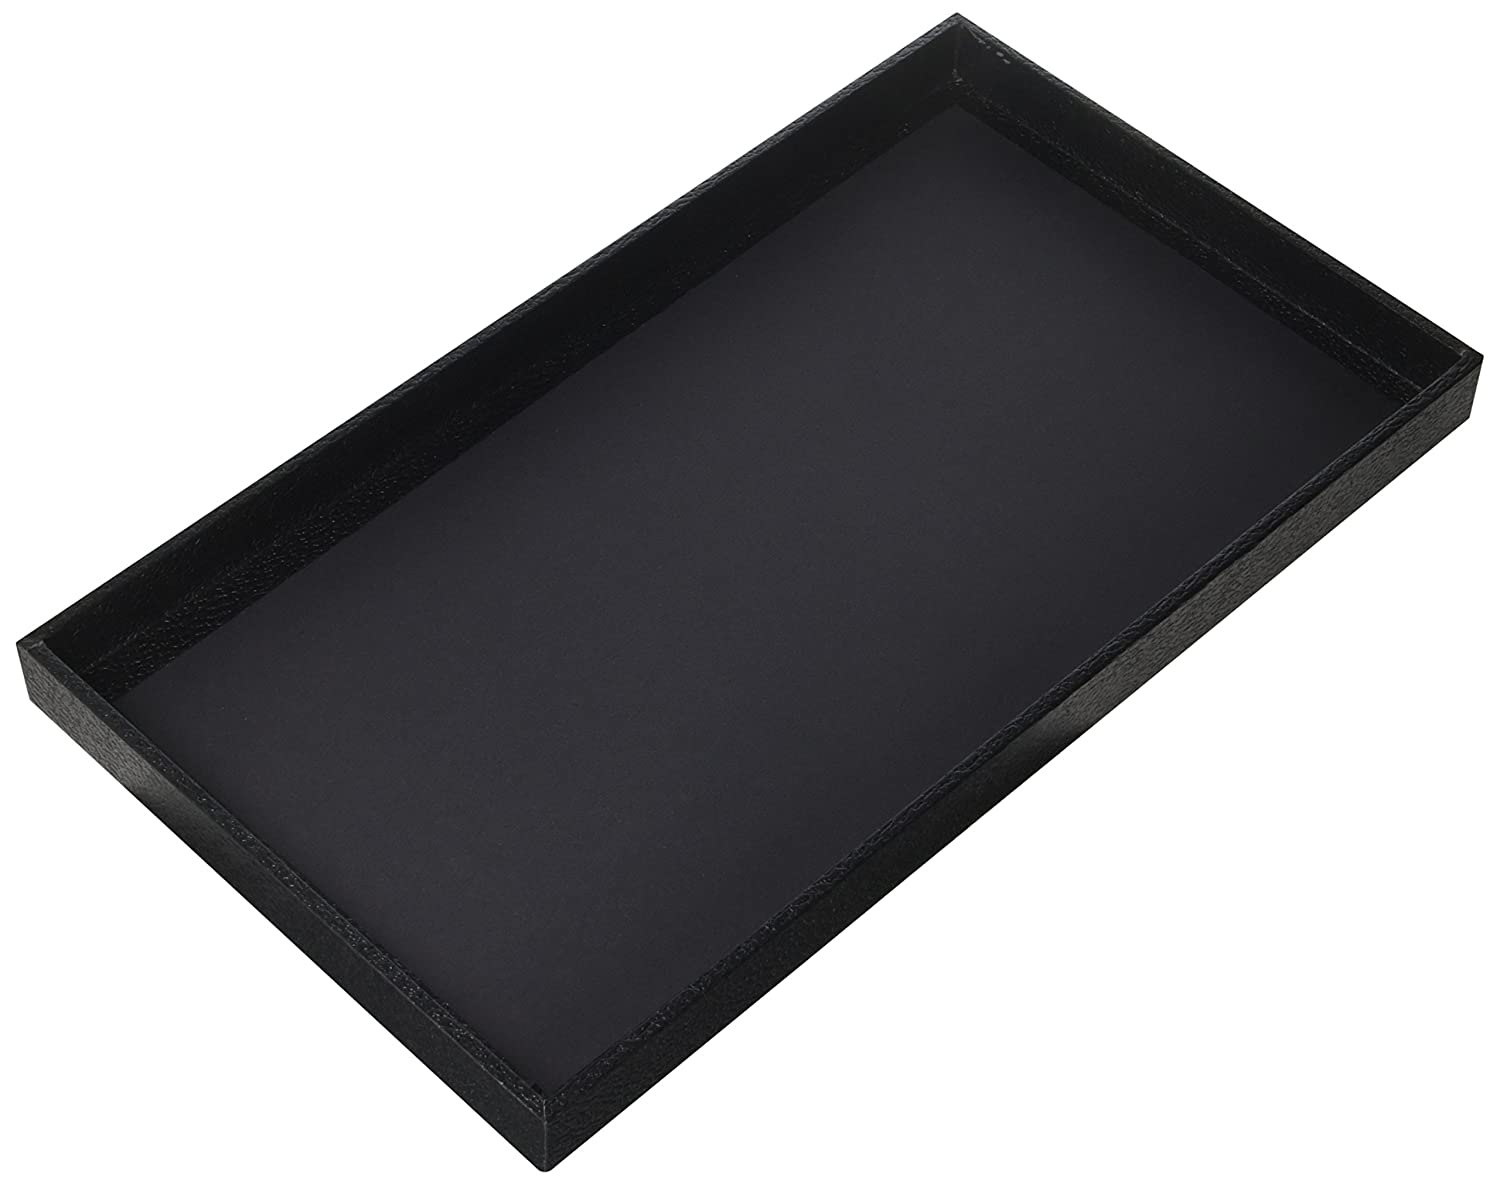 "Regal Pak 3-Piece 1 -Inch Deep Black Full Size Plastic Stackable Jewelry Tray 14 3/4"" X 8 1/4"" X 1""H"